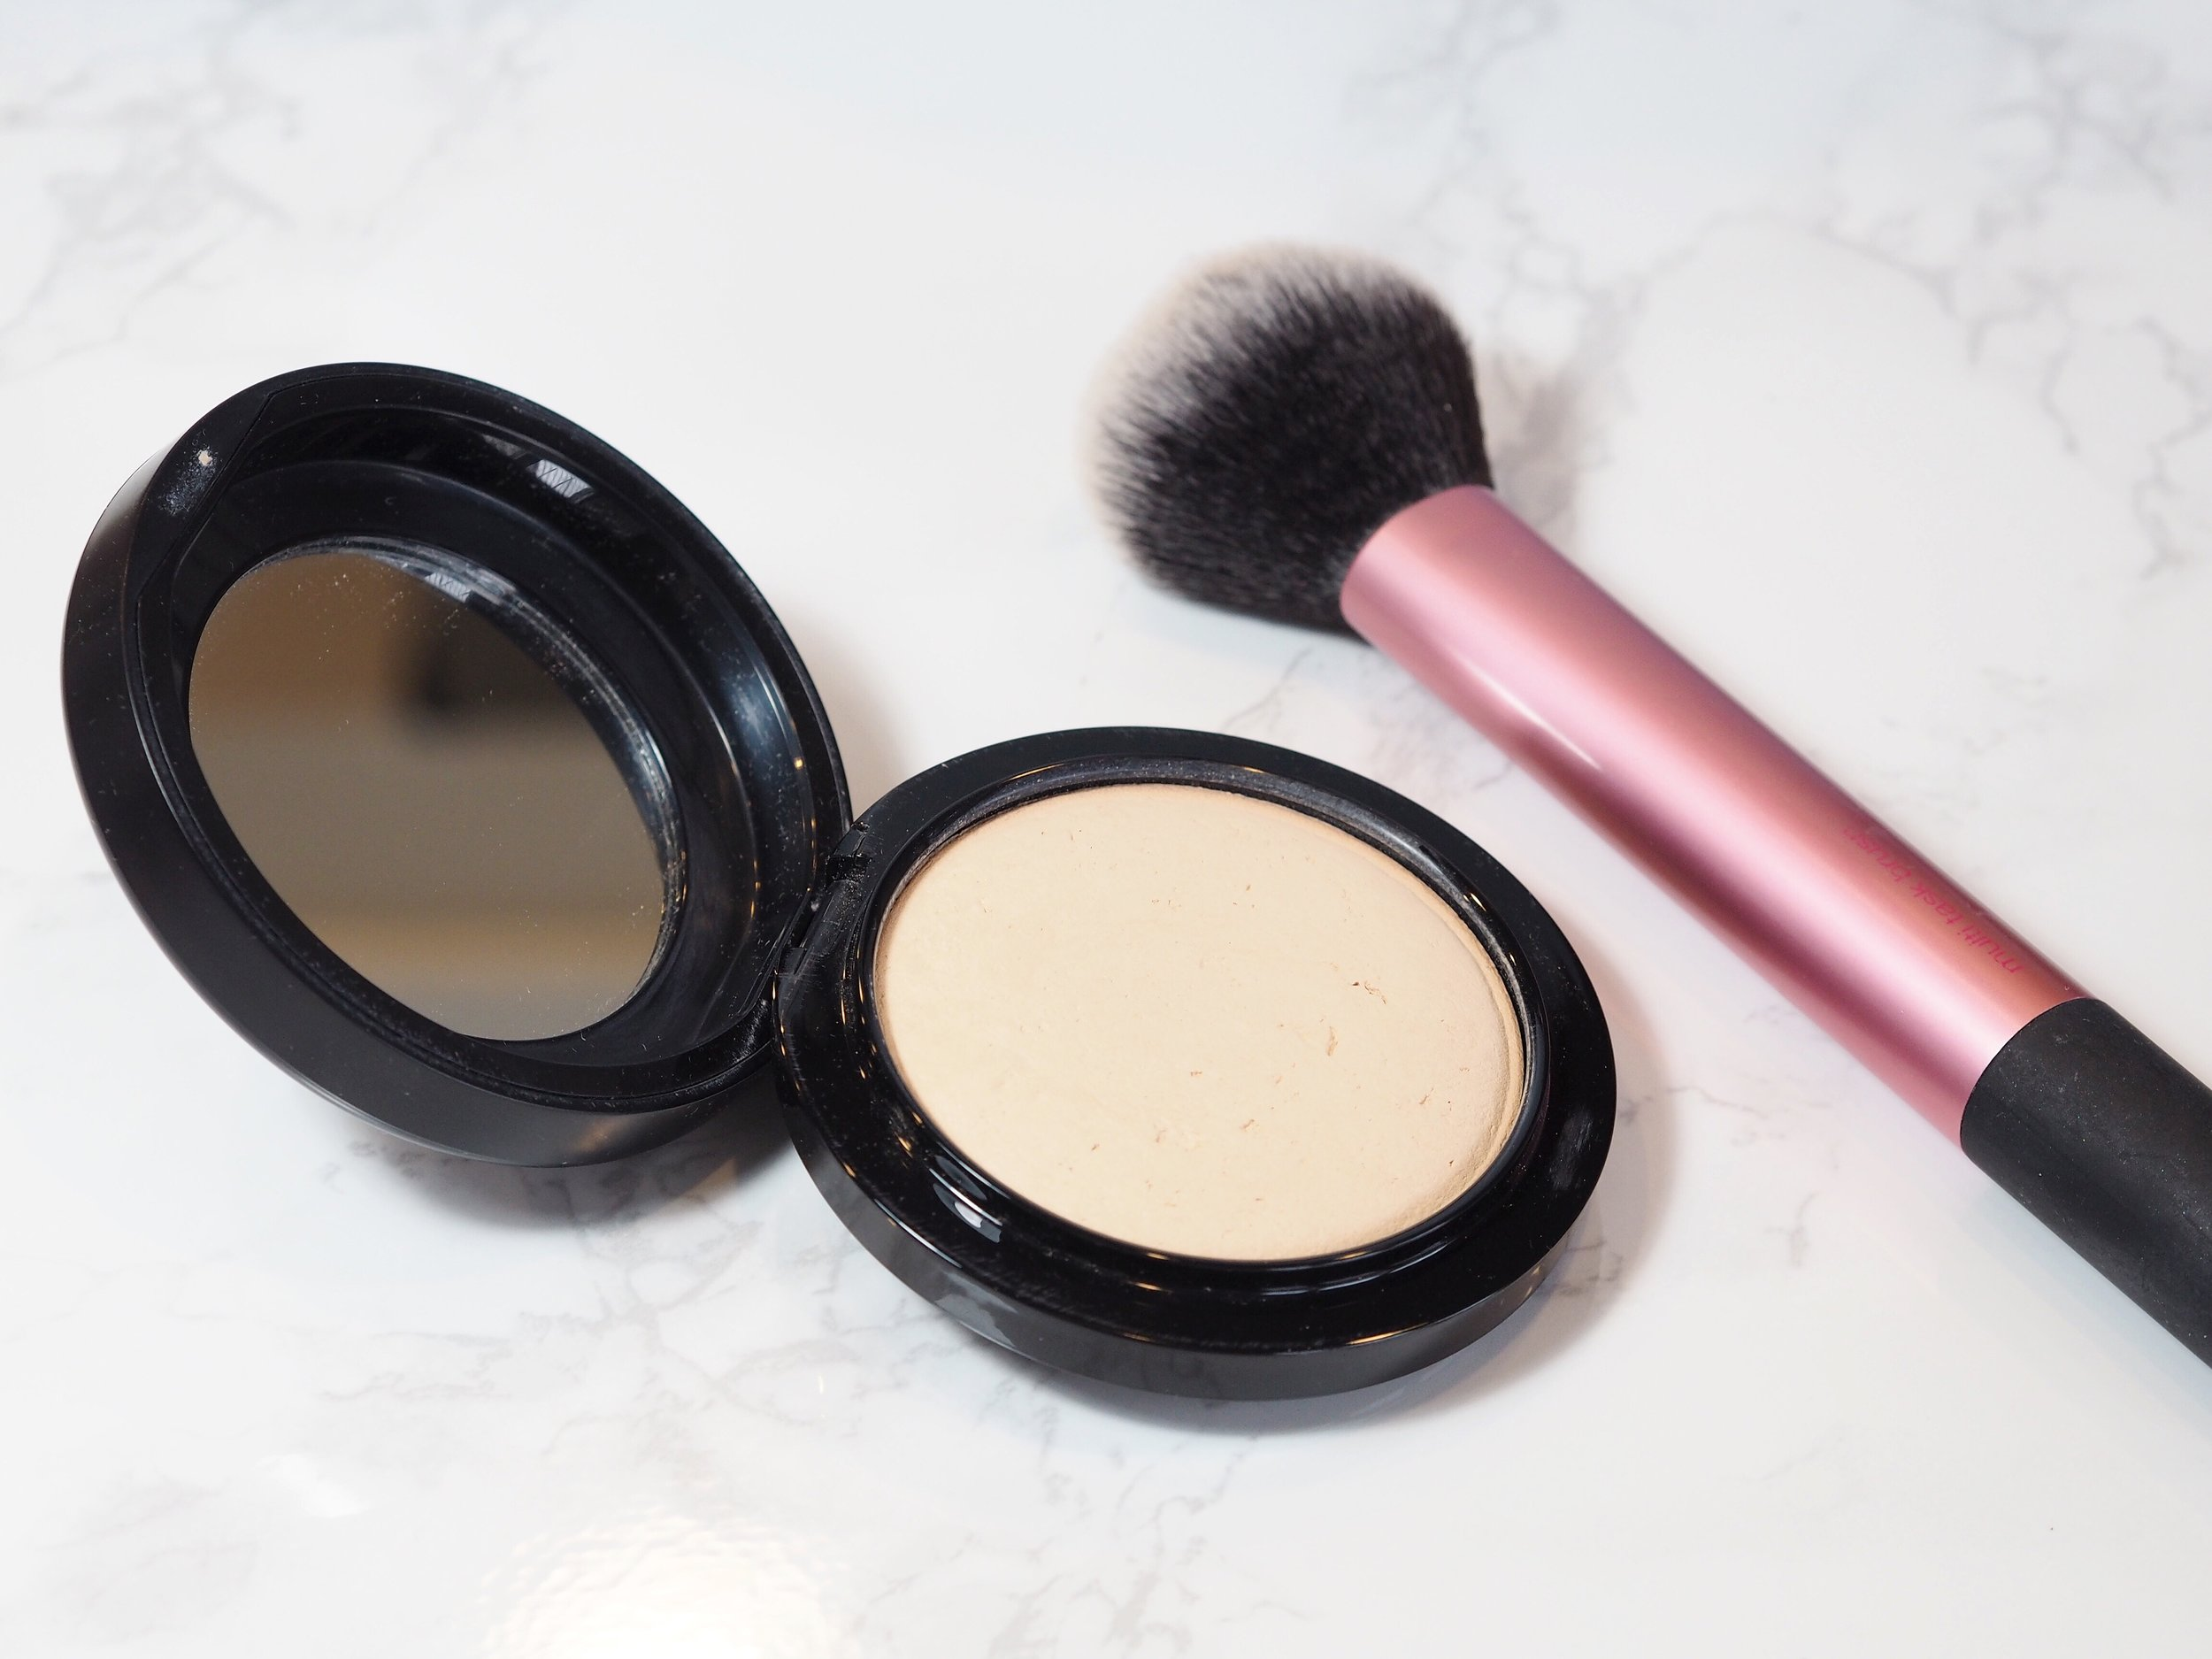 bloomingflourishes_top10_makeupessentials_mac_mineralizeskinfinish_powder